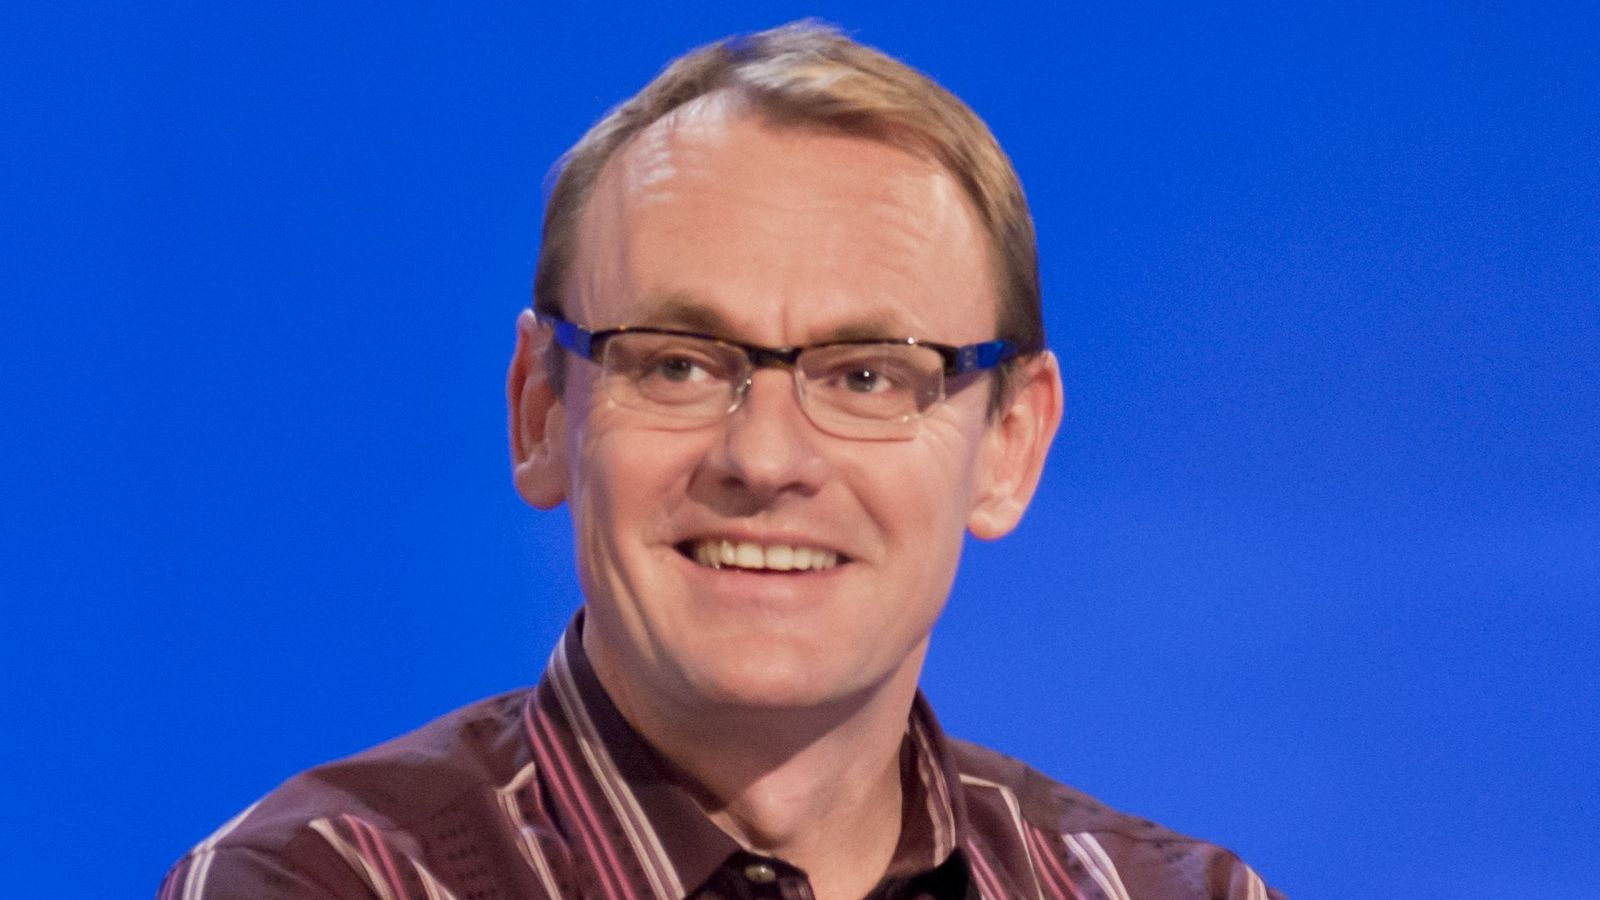 Comedian and 8 Out of 10 Cats star Sean Lock dies from cancer aged 58